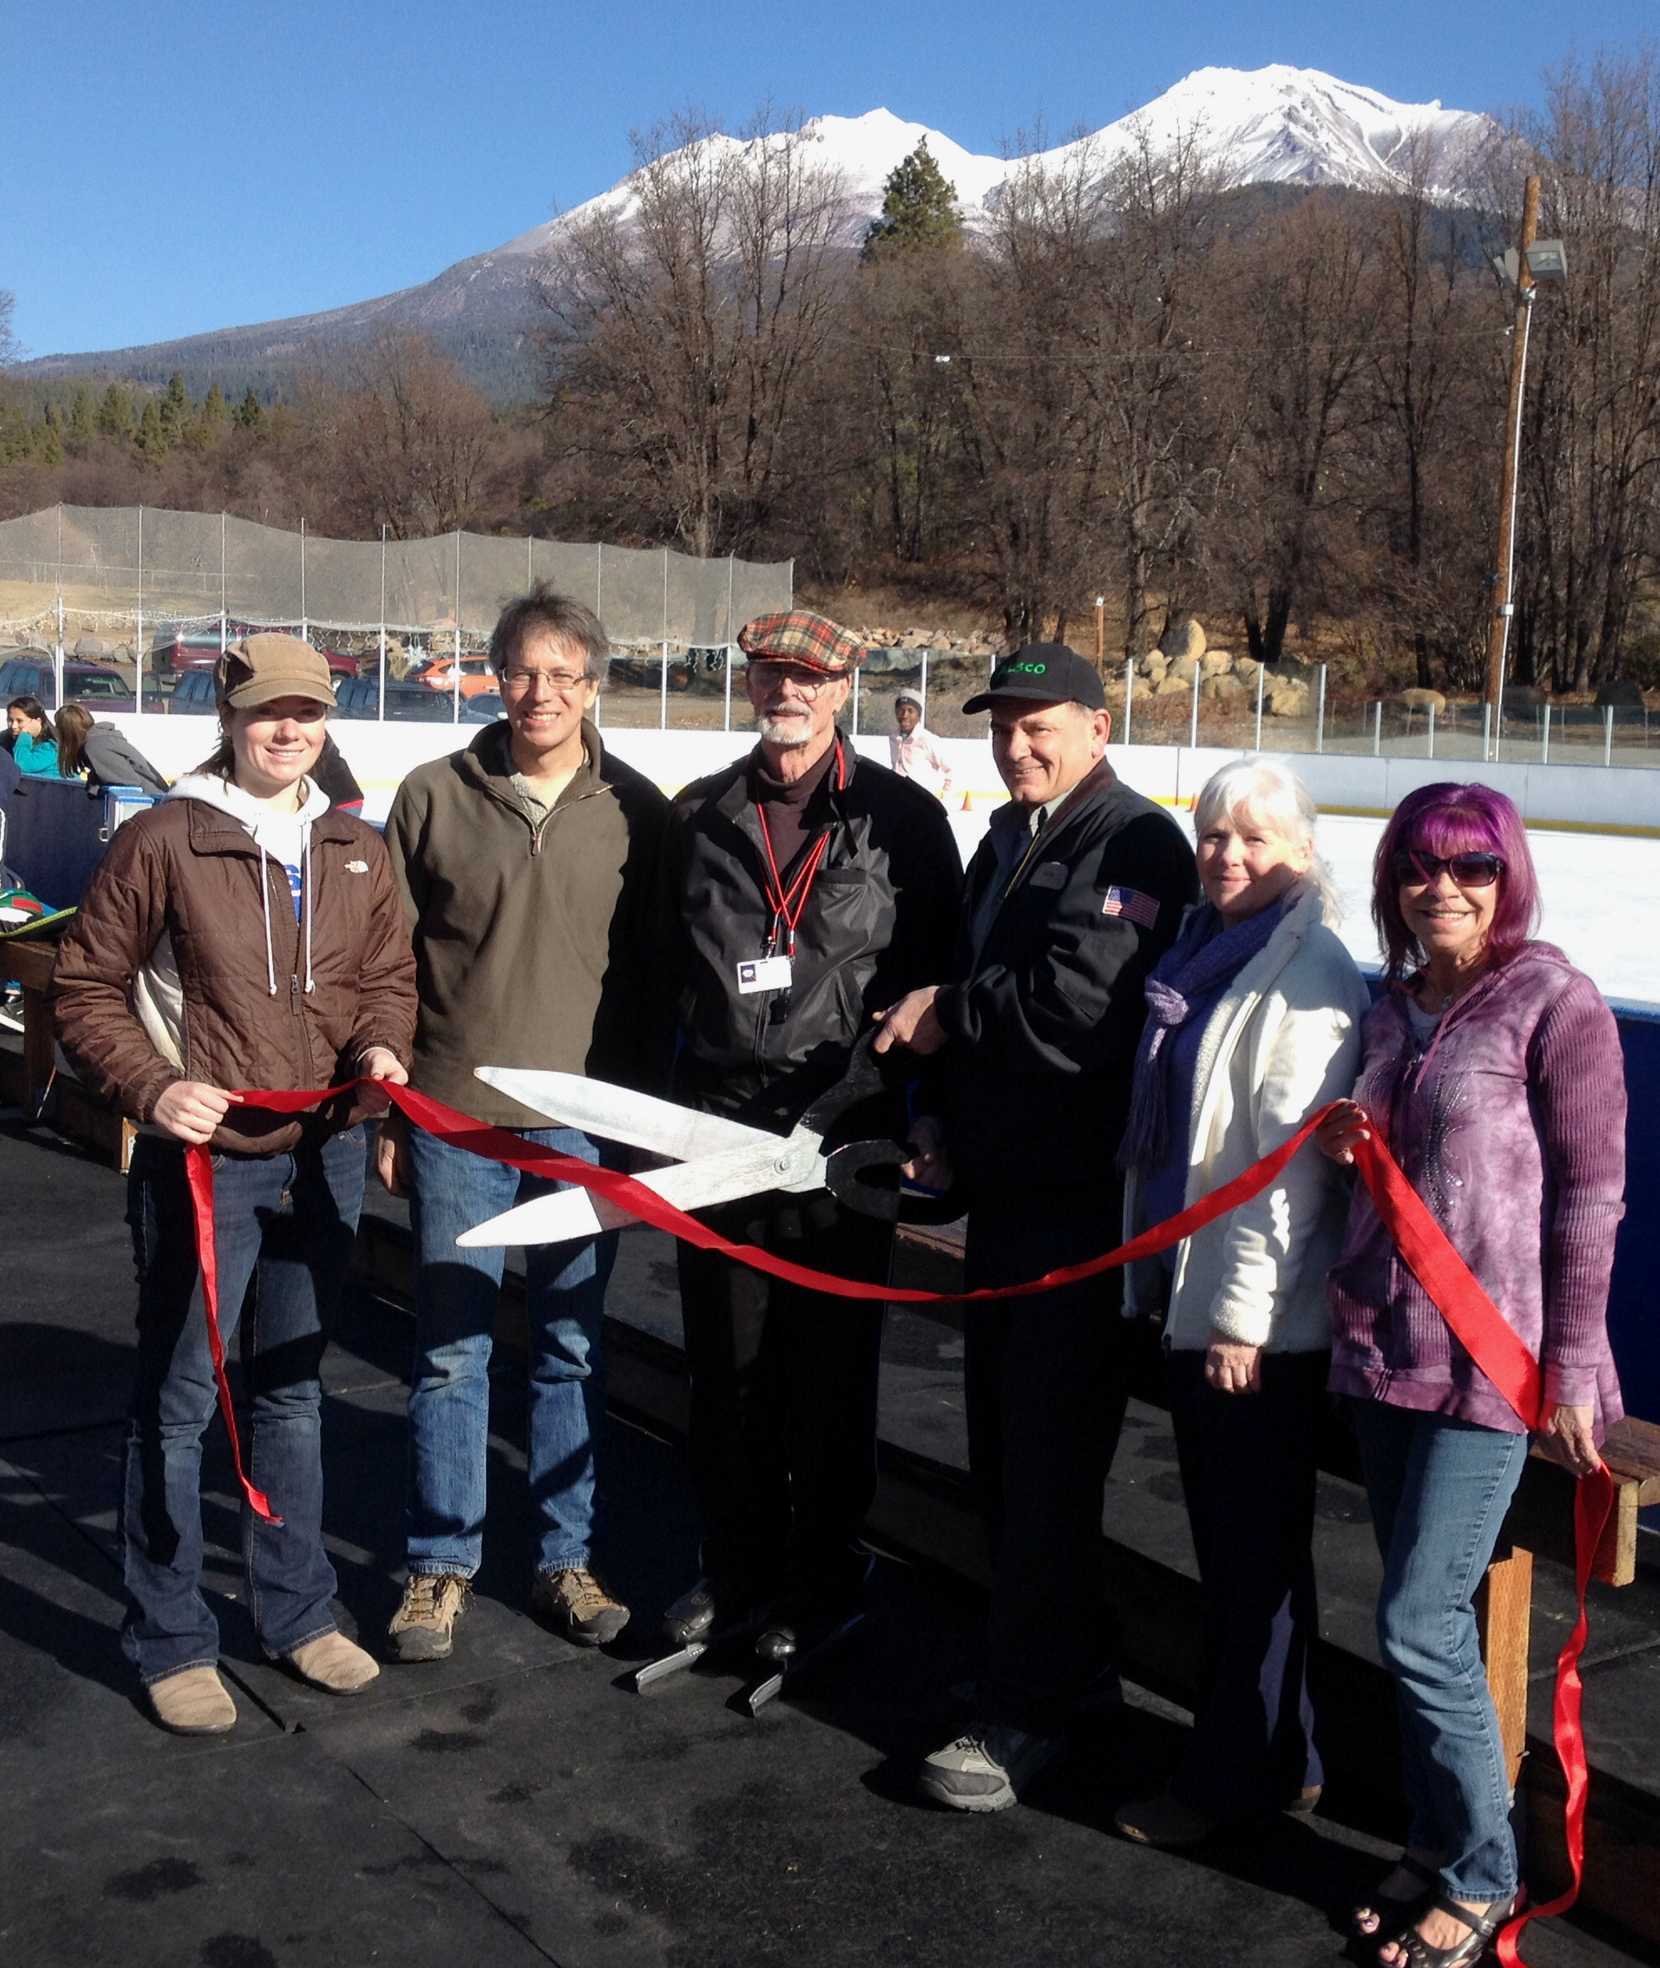 Participating in the Mt. Shasta Chamber of Commerce ribbon cutting for Friends of the Rink (F.O.R.) are, left to right, intern/volunteer Shannon Shaw, F.O.R. Board chairman Steve Bachmann, volunteer Norm Burkett, F.O.R. Board treasurer and rink manager John Stackfleth, F.O.R. Board vice-chairman Pauline Uri and Chamber events coordinator Vicky Zanni.